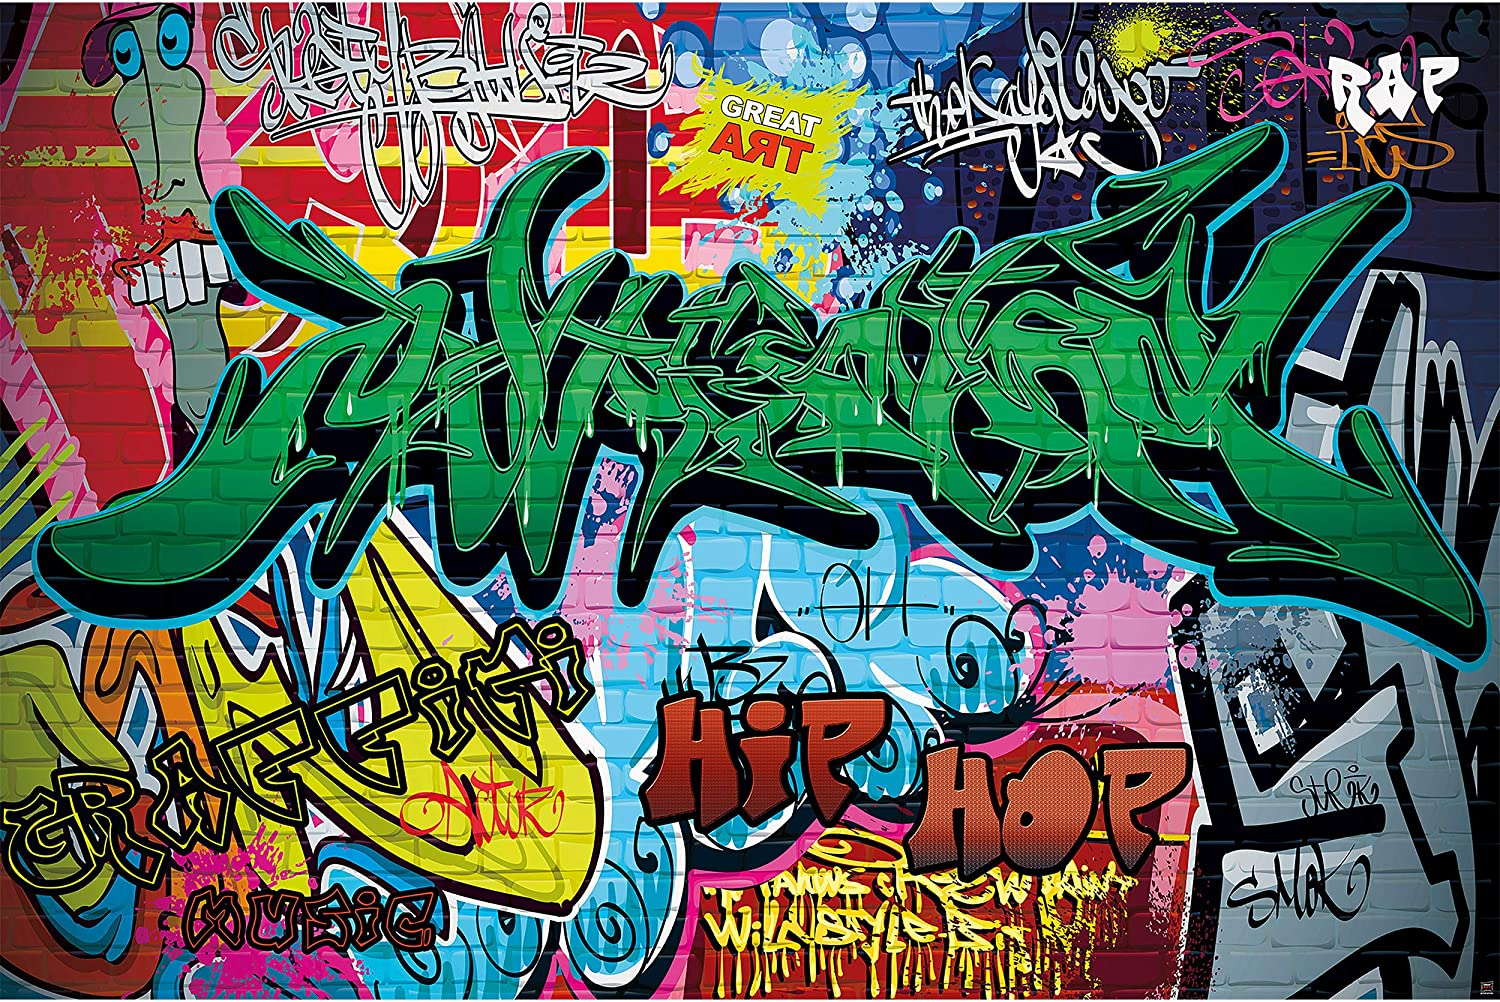 Kid's Room Nursery Large Photo Wallpaper – Graffiti Wall – Picture Decoration Colorful Writing Pop Art Street Style Hip Hop Image Decor Wall Mural (132.3x93.7in - 336x238cm)